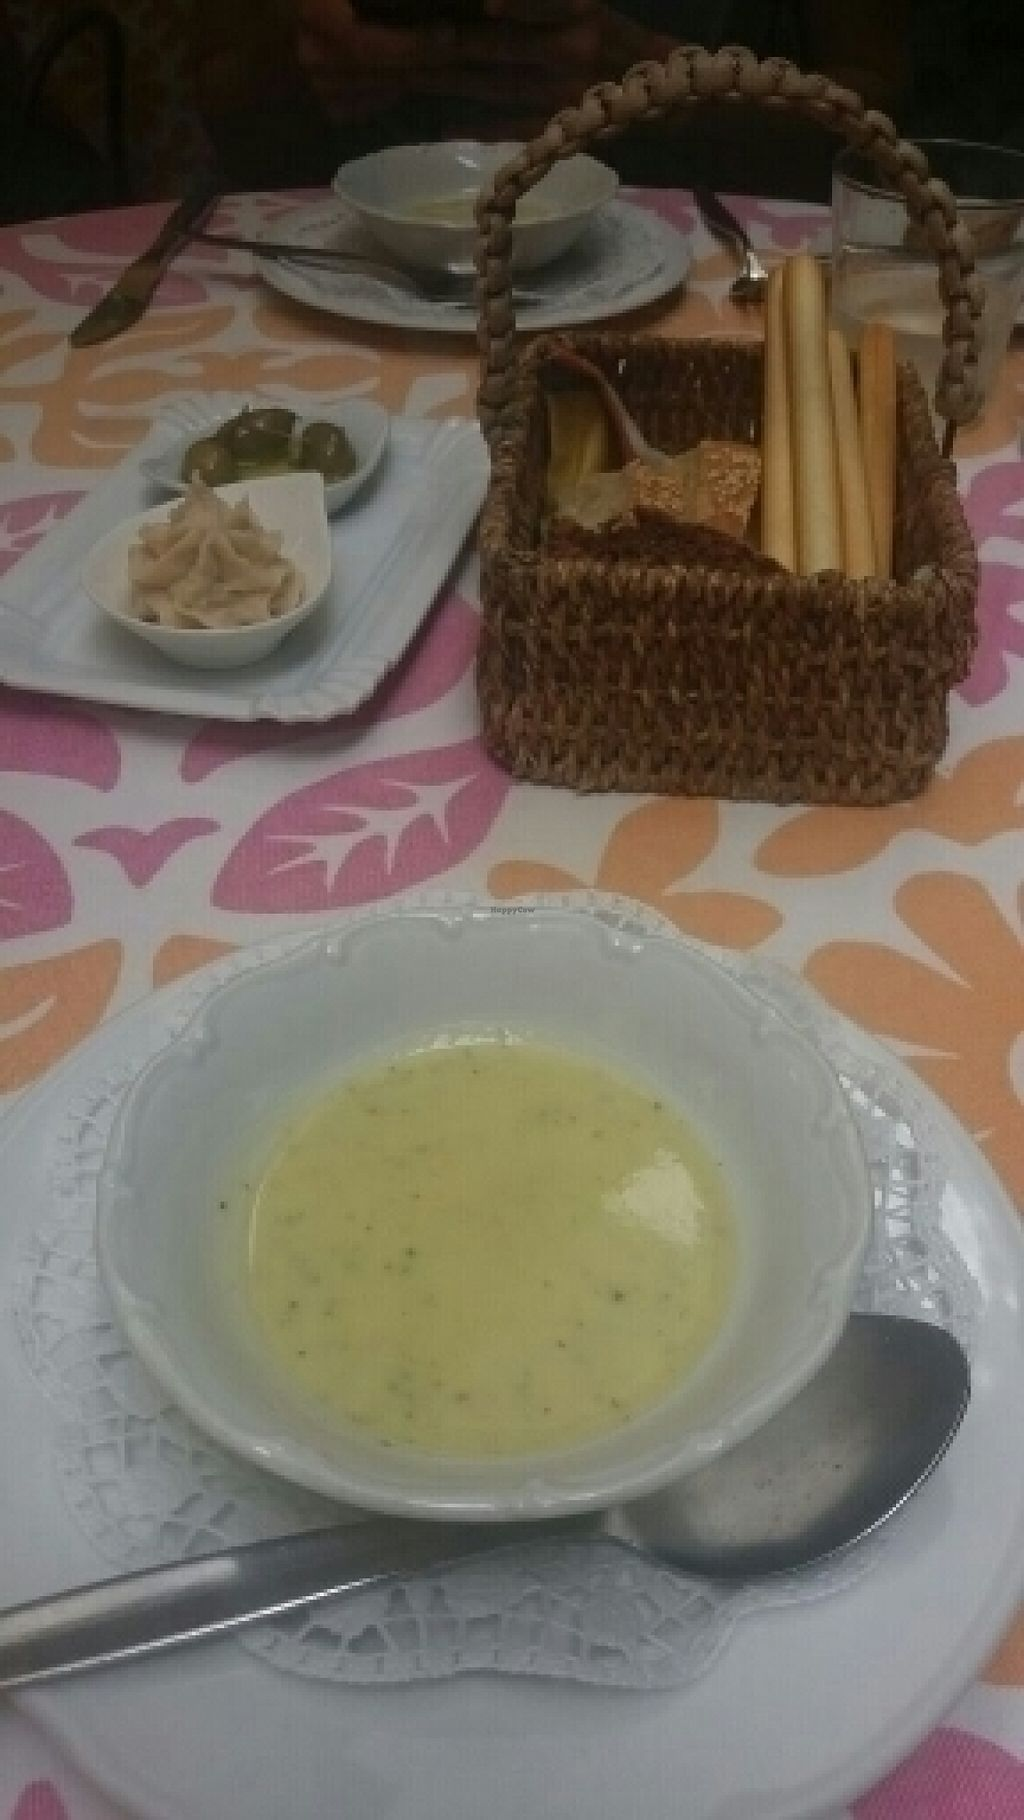 "Photo of Kaufmann Kaufmann  by <a href=""/members/profile/die_woelffe"">die_woelffe</a> <br/>appetiser (beanspread and homemade bread) & amuse gueule (broccoli coconut cream soup) <br/> July 28, 2016  - <a href='/contact/abuse/image/56417/162917'>Report</a>"